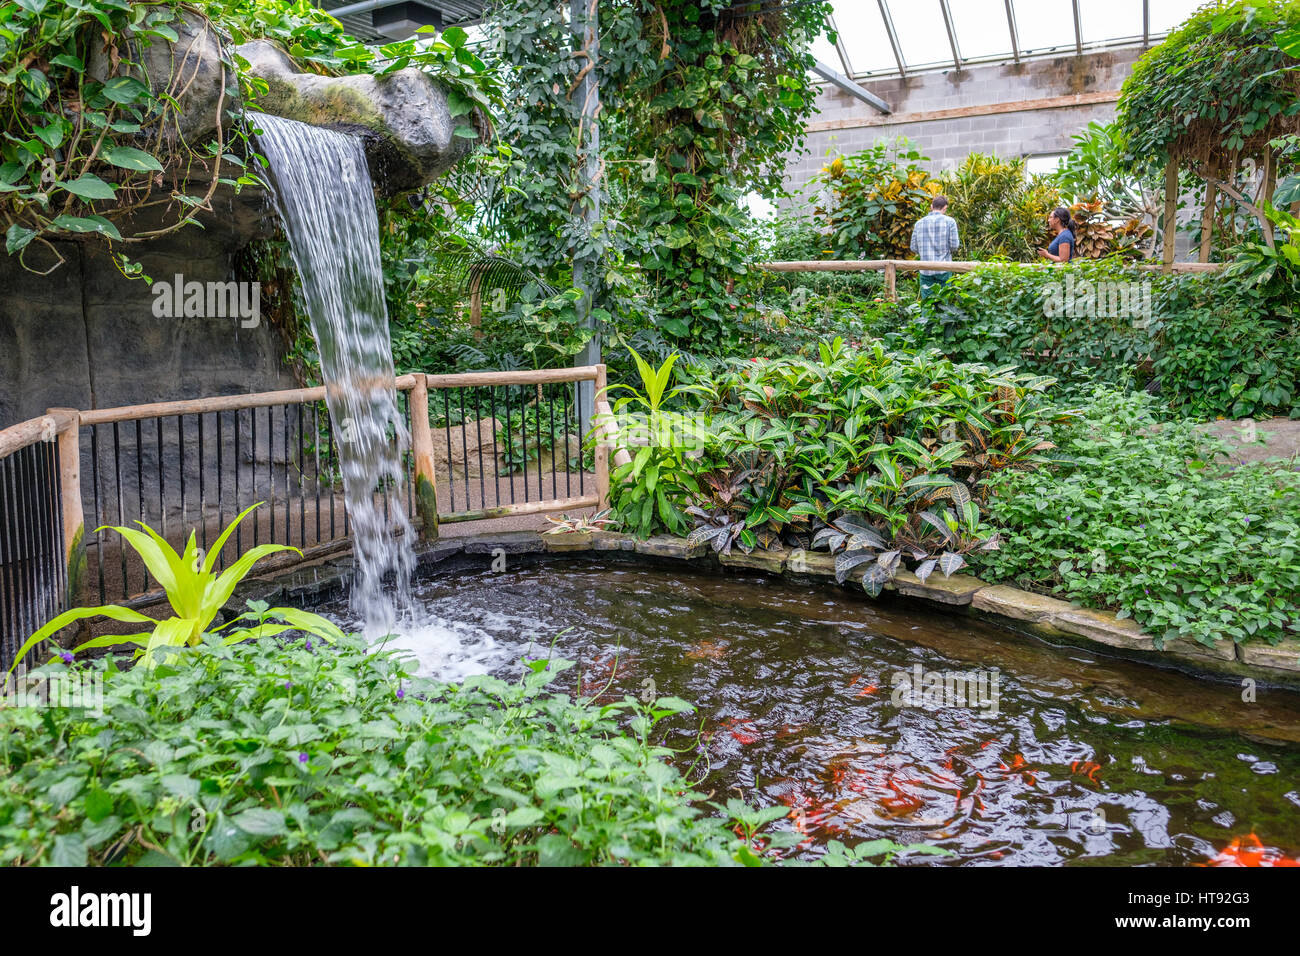 Inside view of the greenhouse and tropical garden of the cambridge inside view of the greenhouse and tropical garden of the cambridge butterfly conservatory with waterfall and fish pond in ontario canada workwithnaturefo